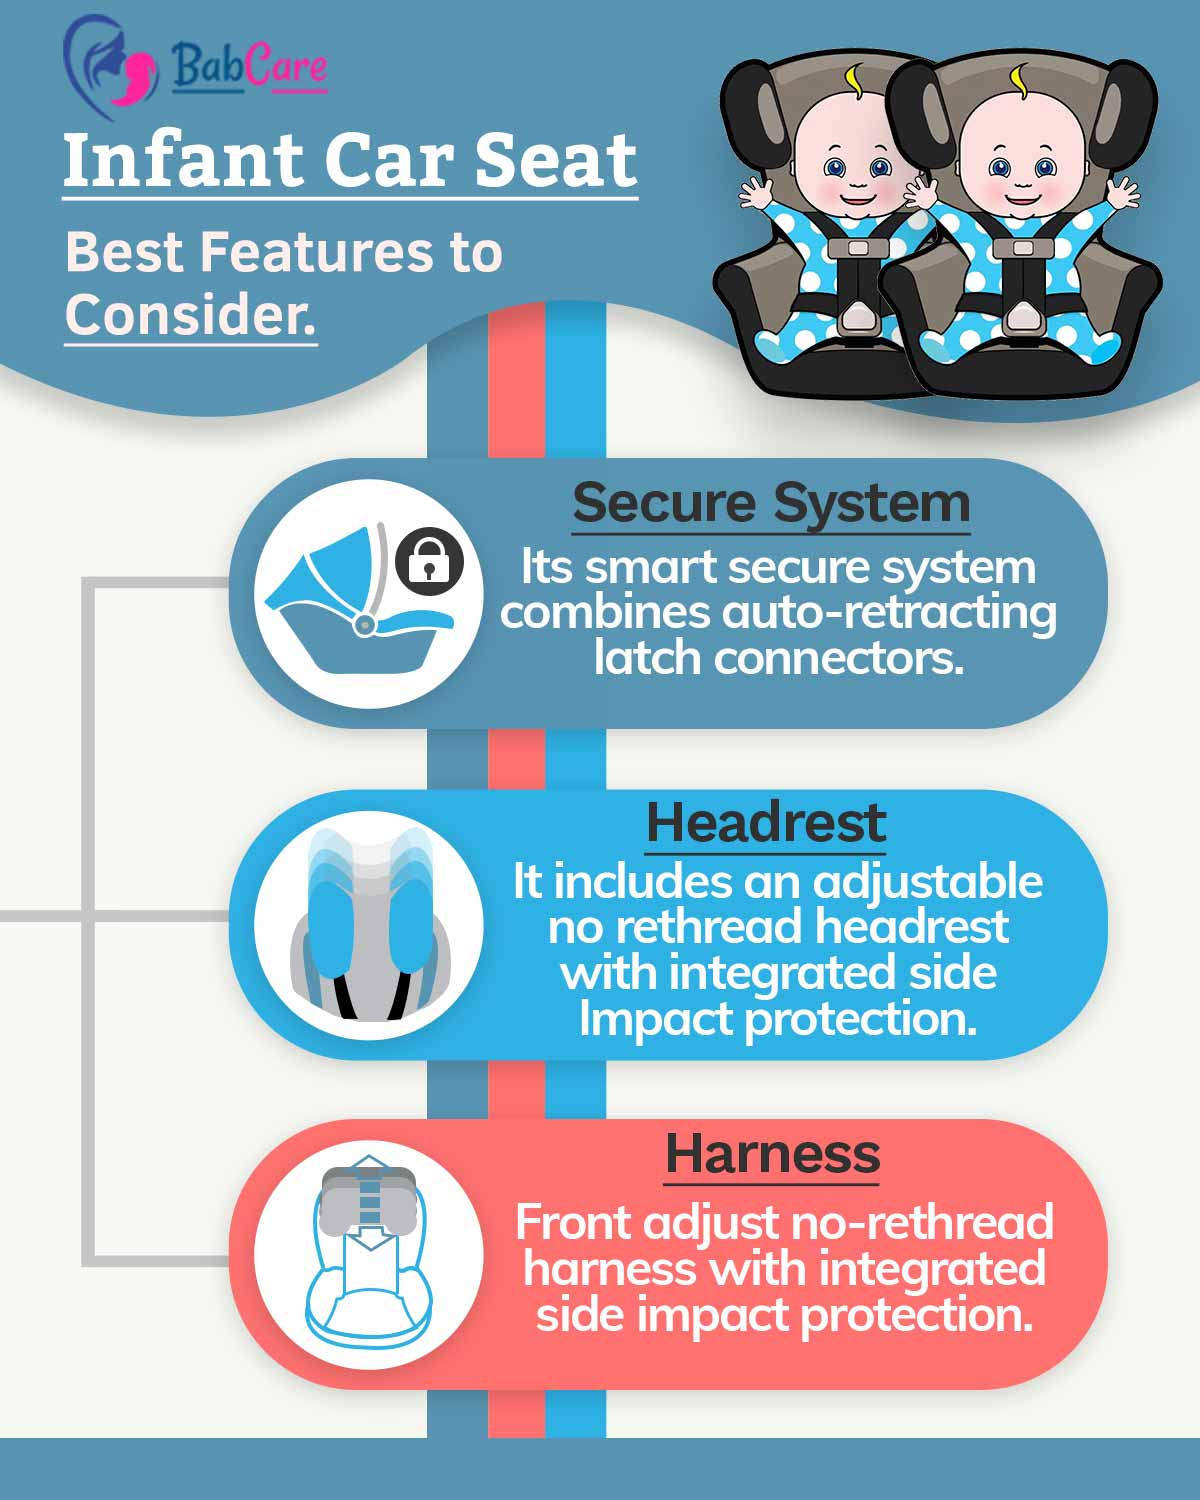 Best infant car seat uppababy mesa has secure system, adjustable headrest and no rethread harness